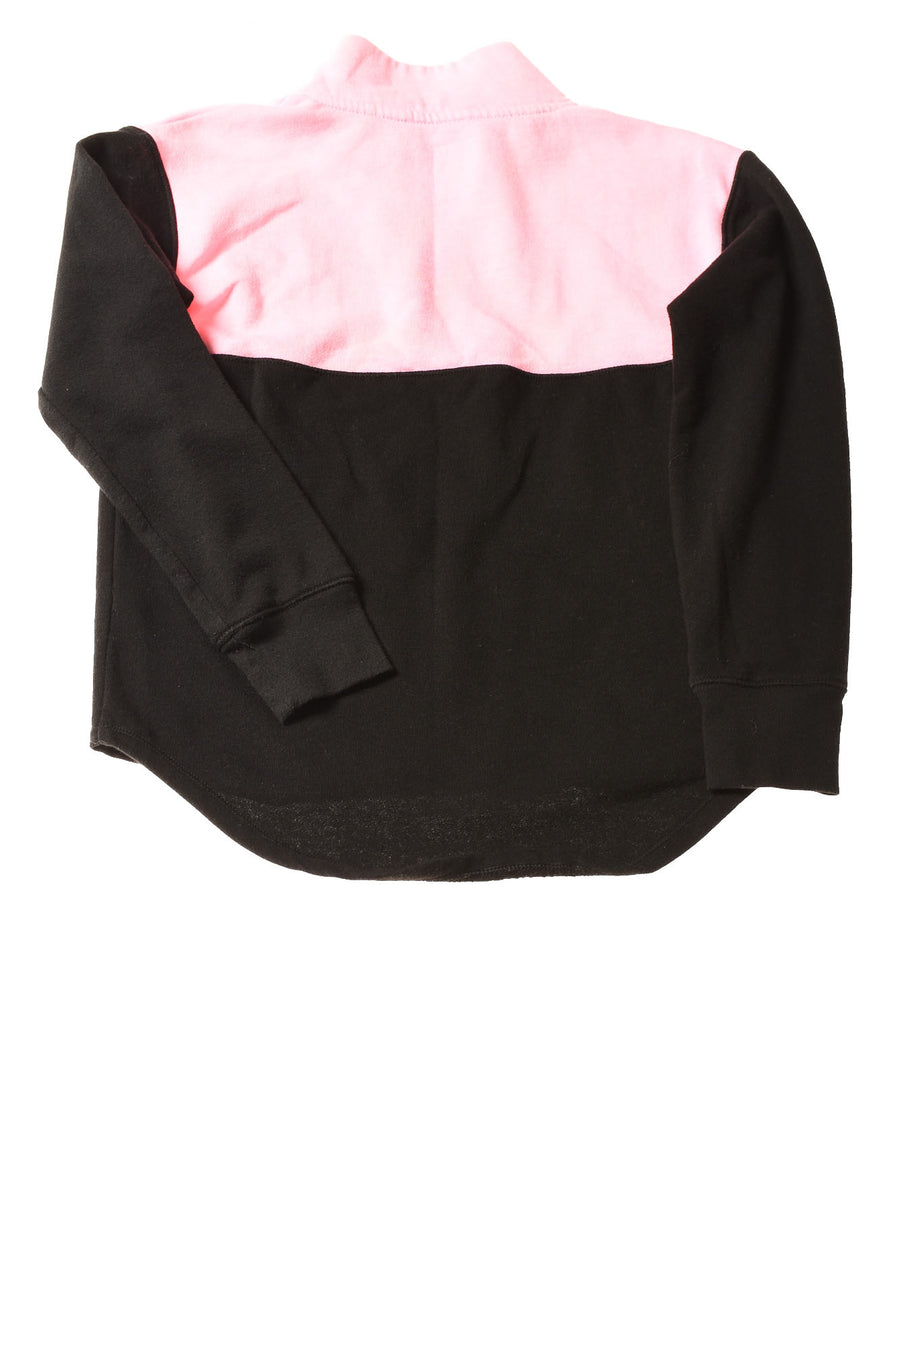 USED Justice Girl's Top 8 Black & Pink